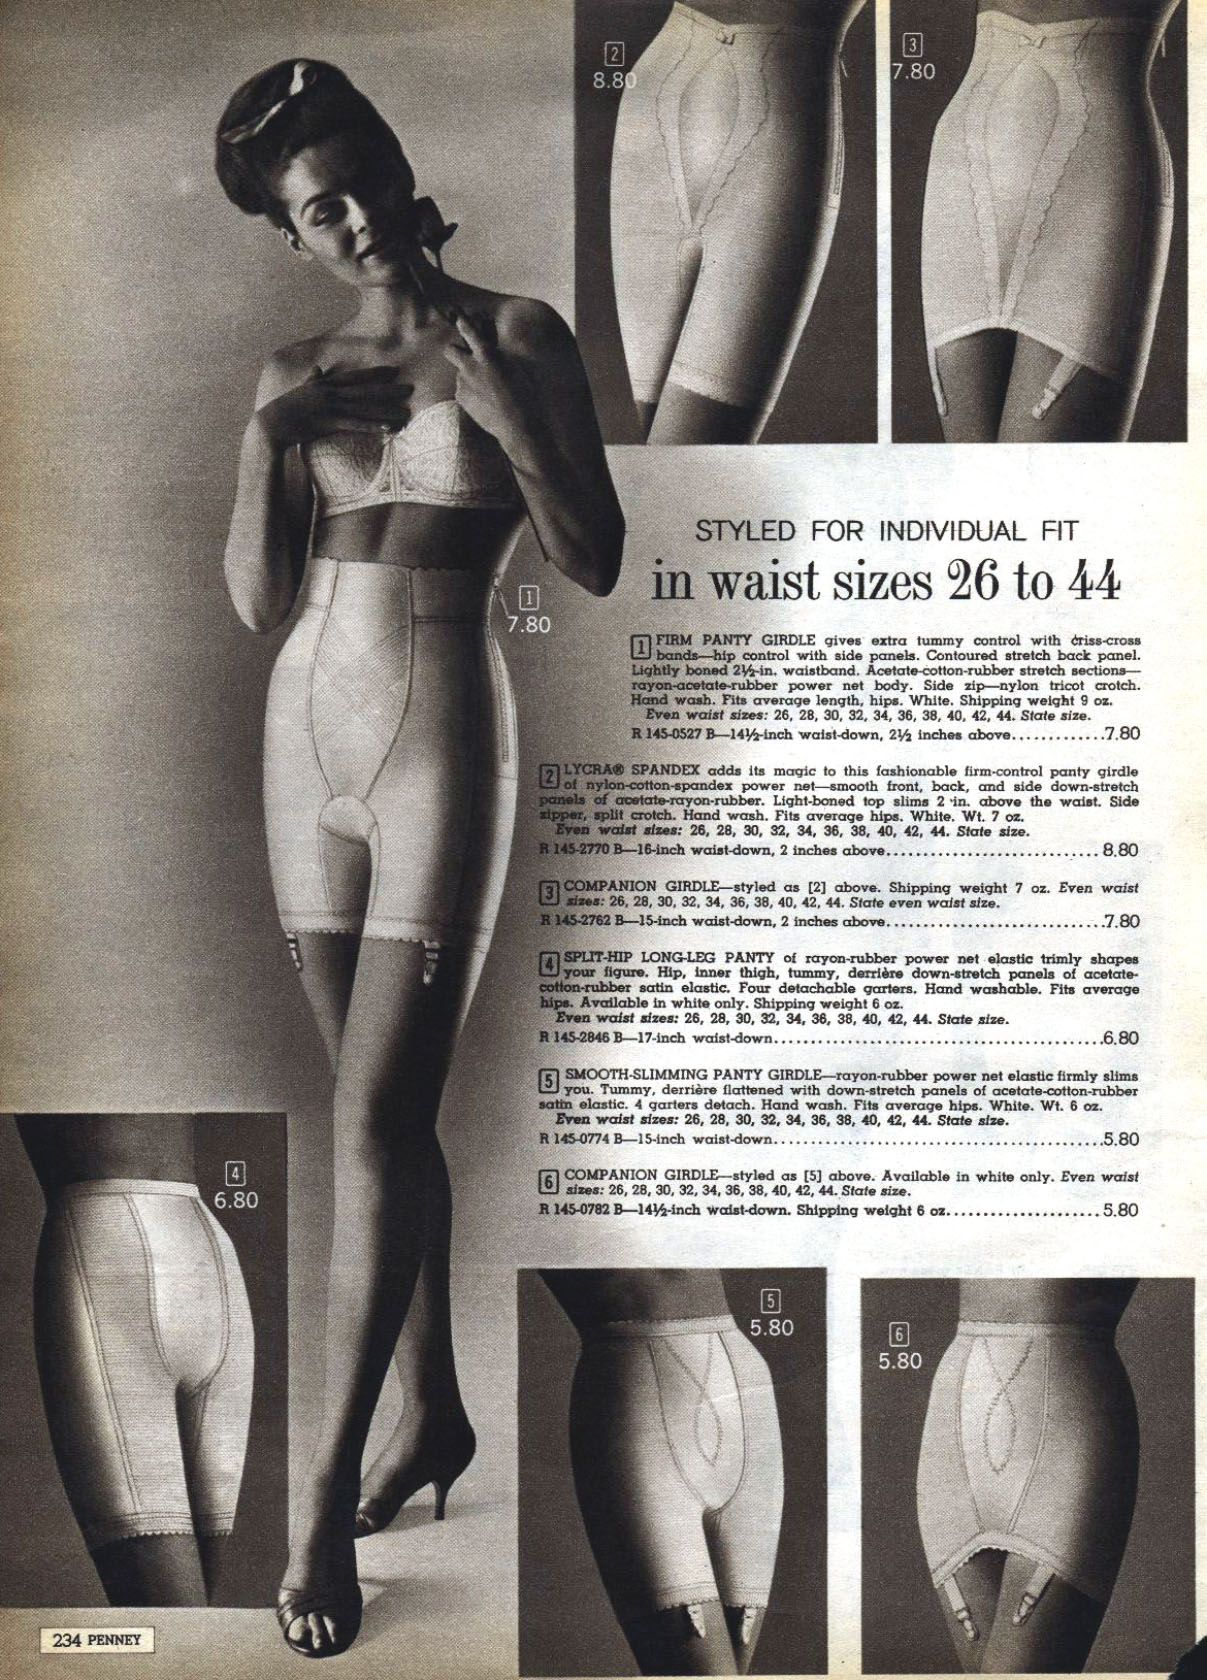 4ab40a85cd677 Even the skinniest girls with a 26 inch waist were required to wear tight  control girdles in my moms era.